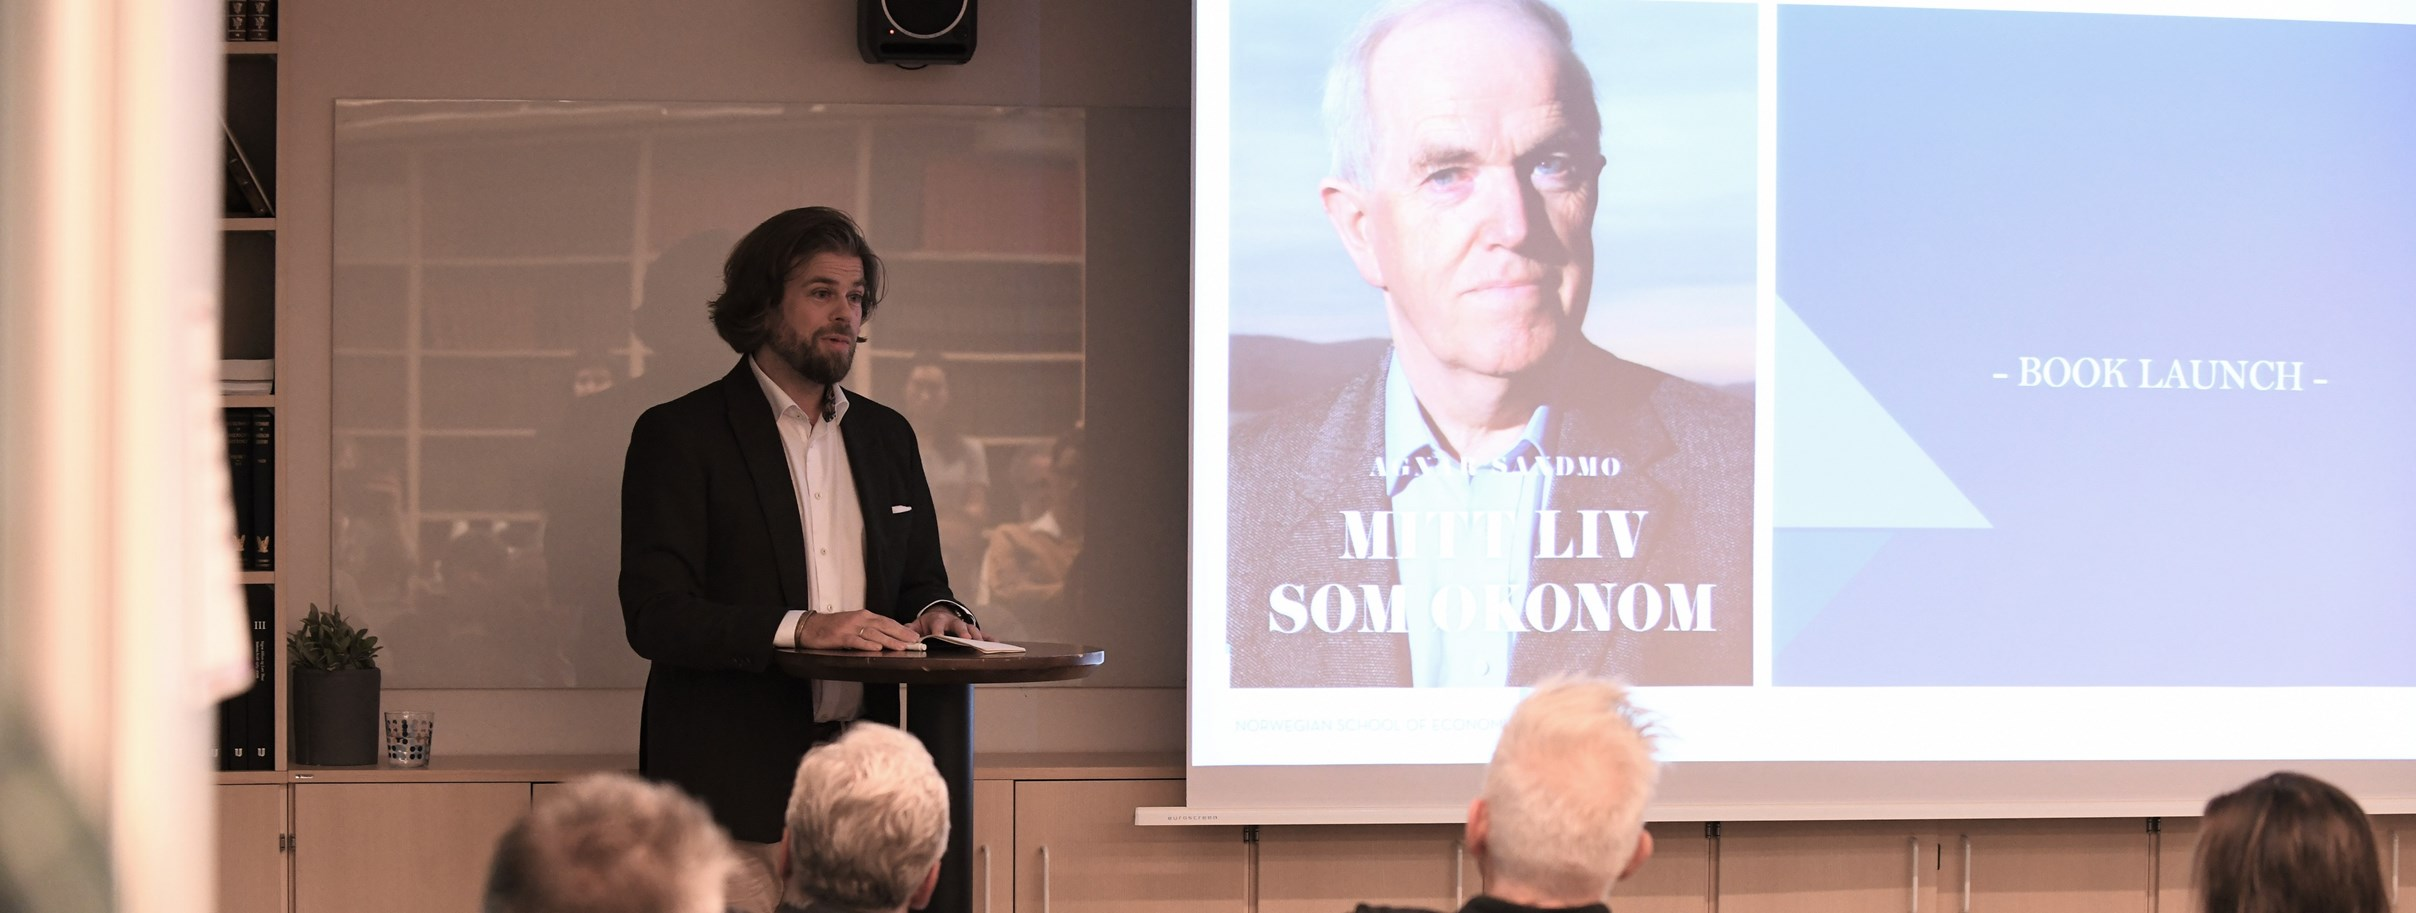 Sigurd Sandmo, booklaunch NHH 30. August 2019.